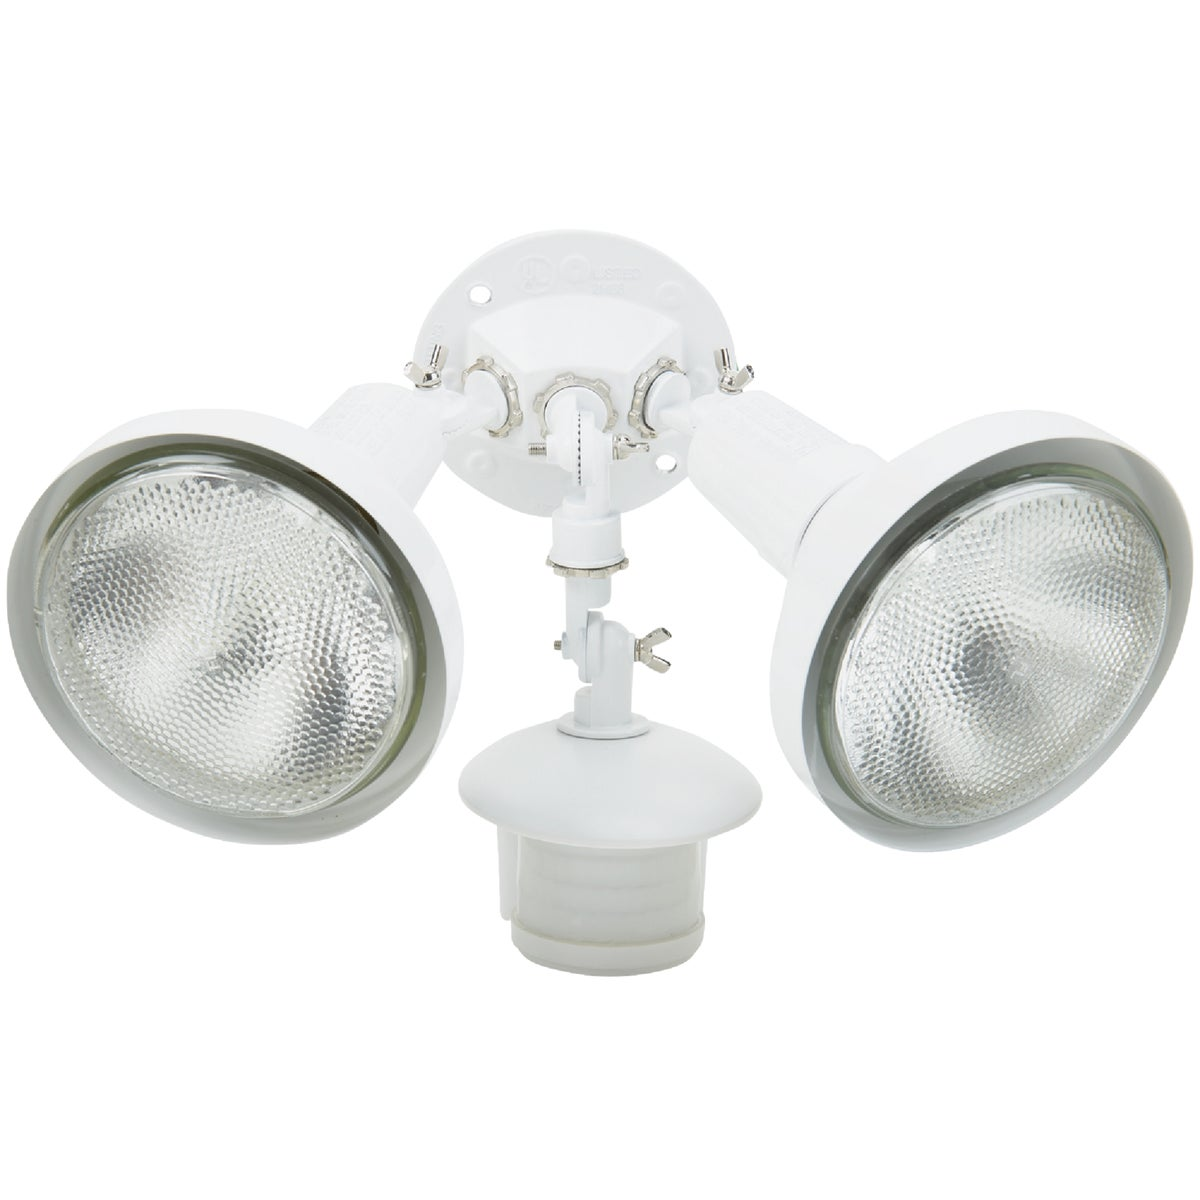 WHT MOTION FIXTURE W/CVR - ED269W by Do it Best